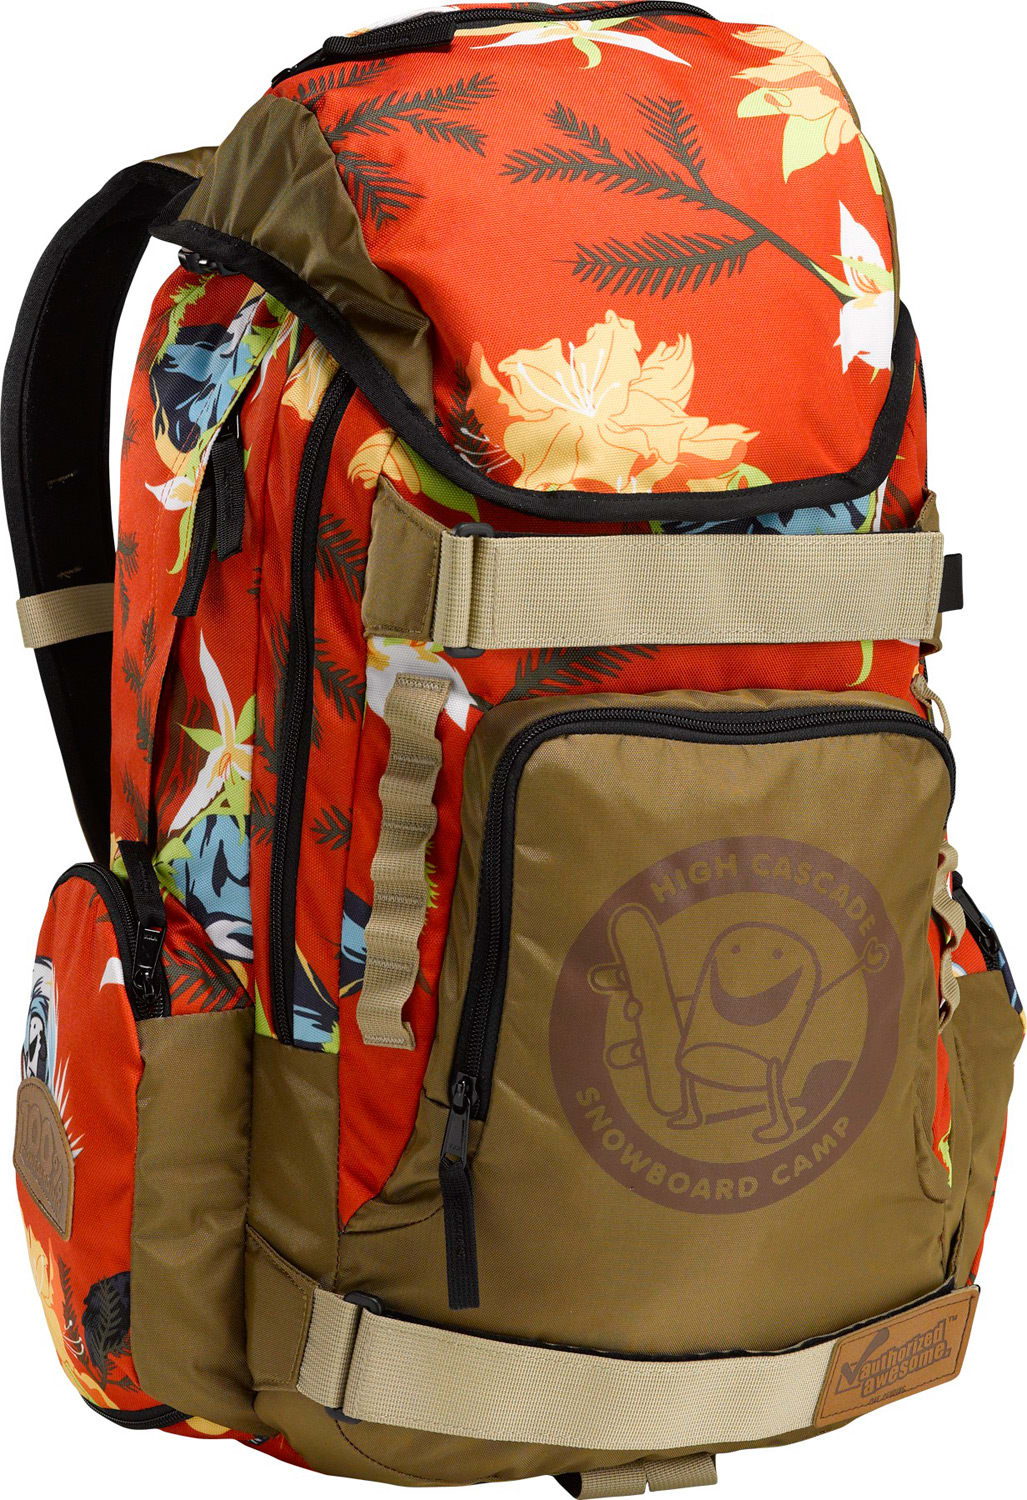 Burton Hcsc Shred Scout Backpack Hawaiian 26L